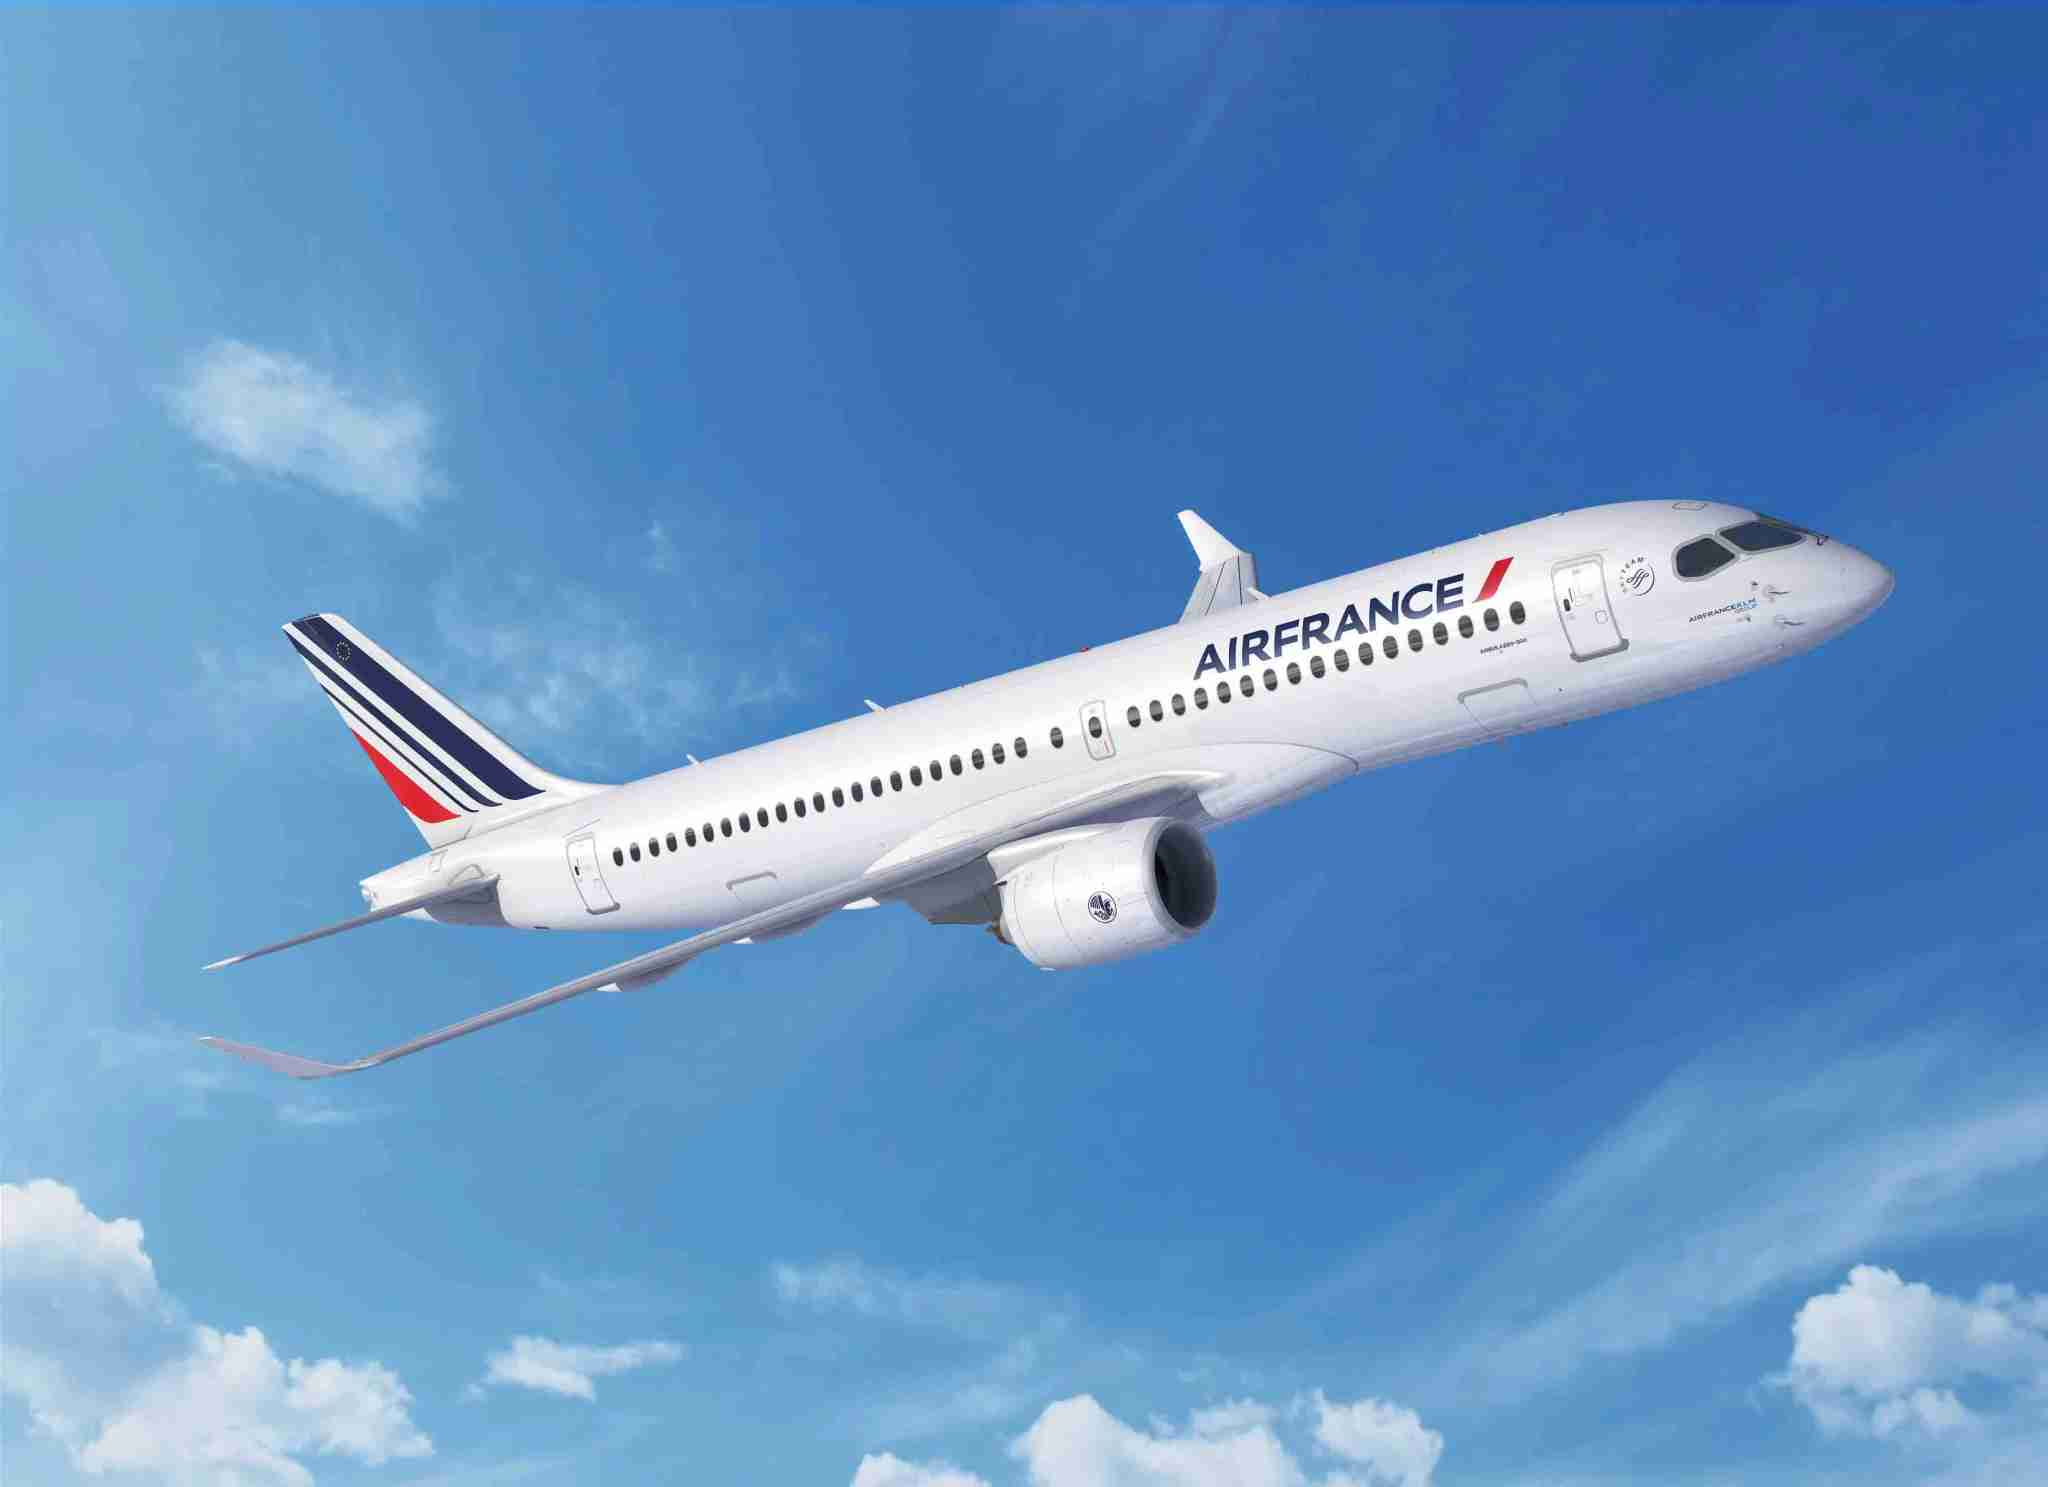 Air France has ordered up to 60 A220-300s. (Courtesy of Airbus)